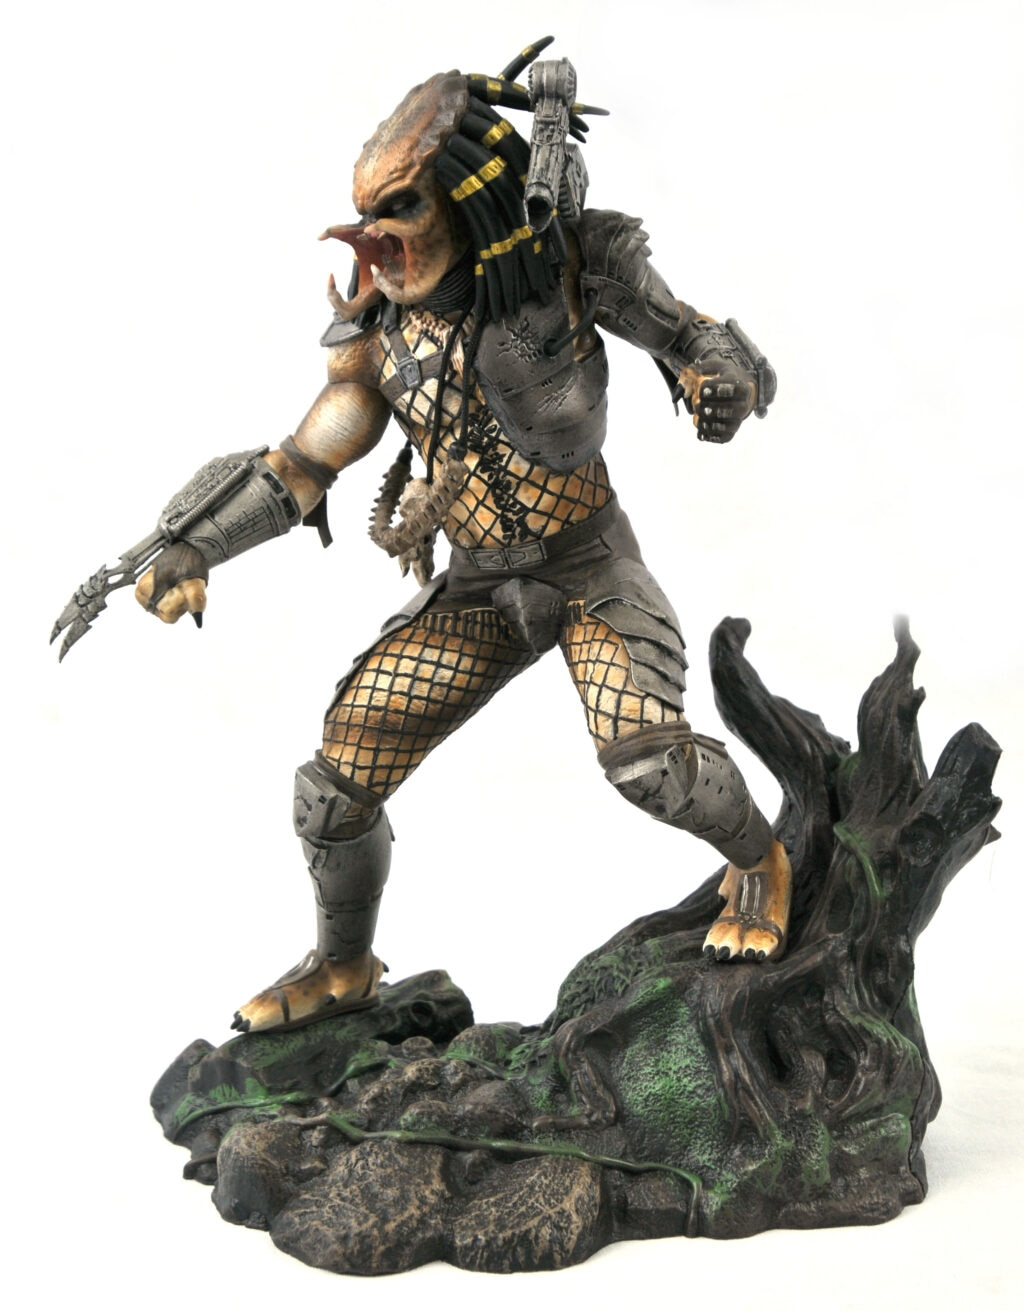 RGB 1548 1024x1311 - PREDATOR Unmasked: Diamond Select Toys Reveal Another SDCC 2020 Exclusive